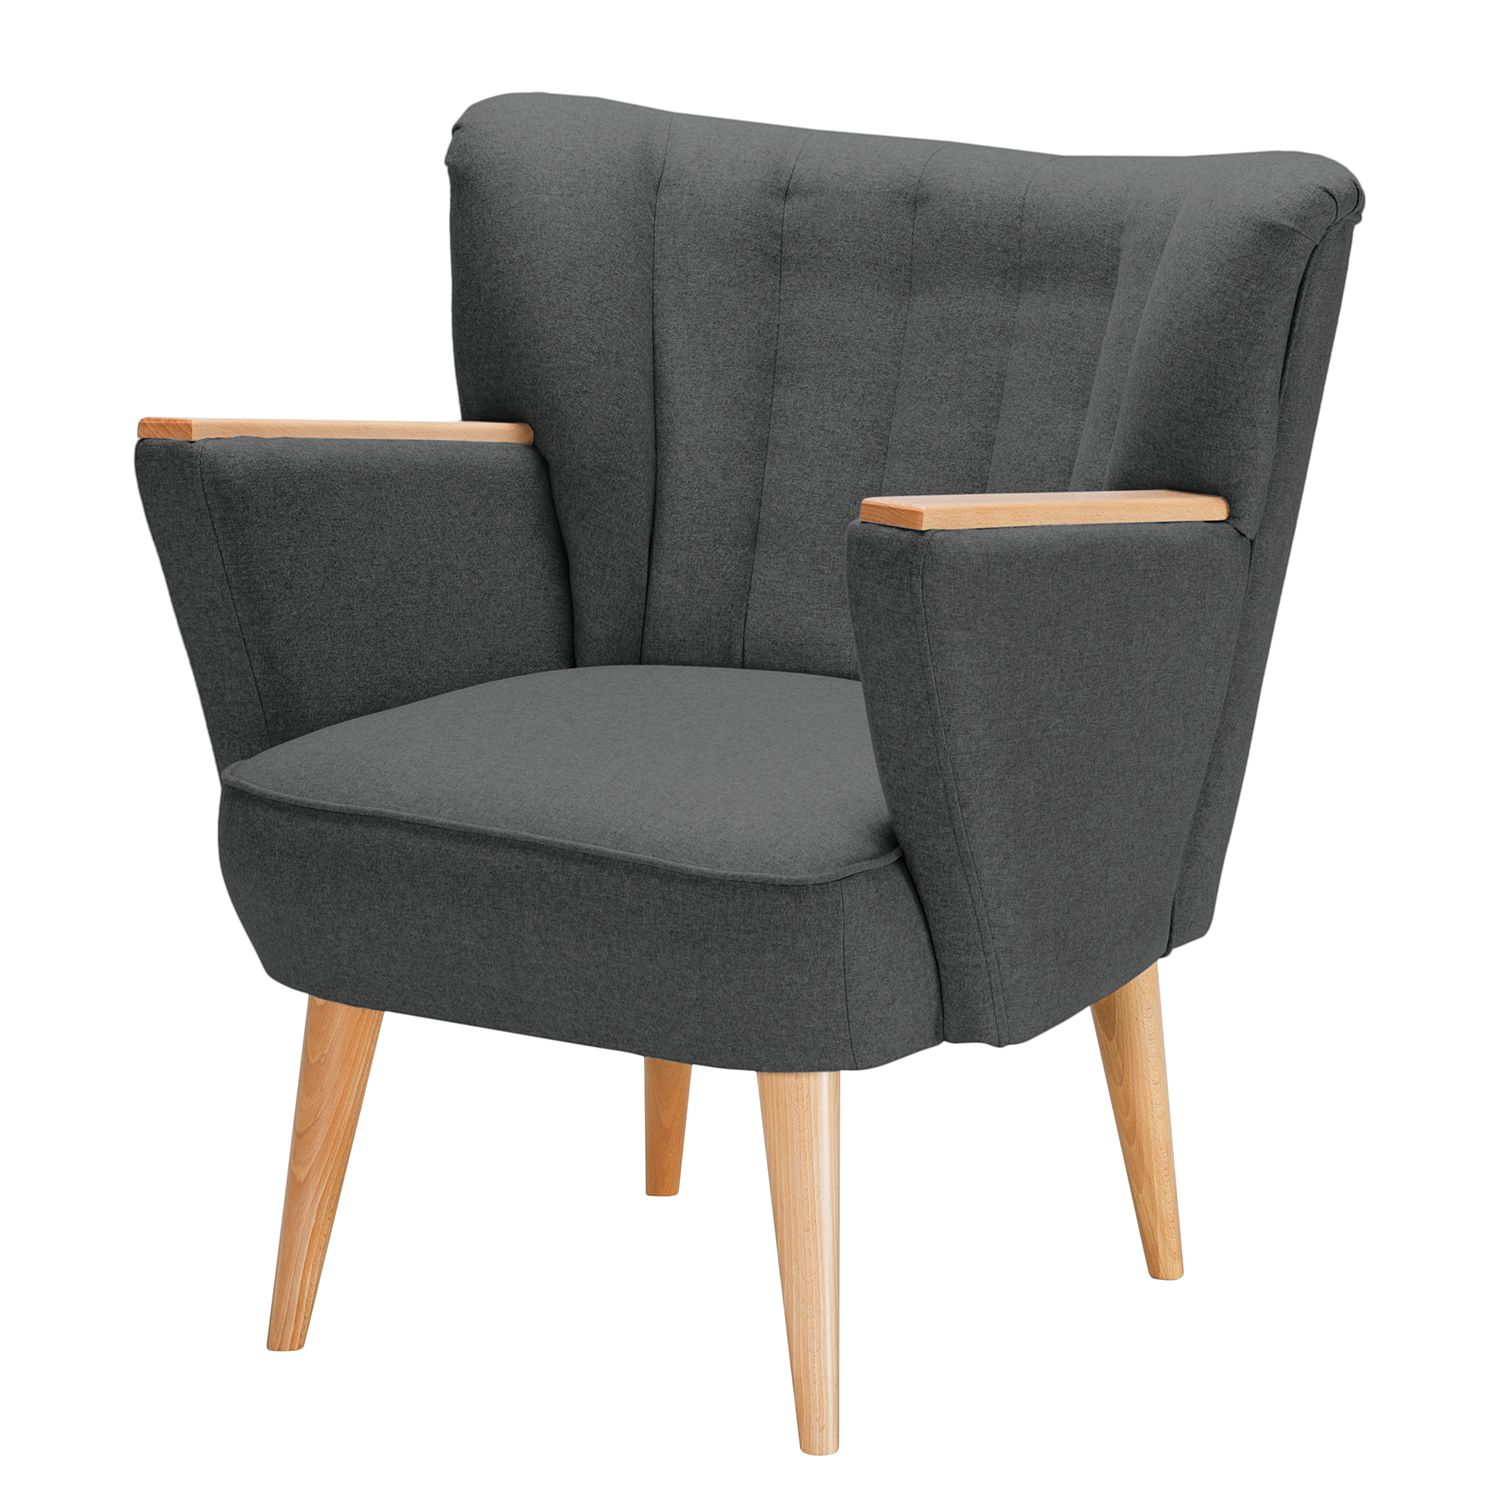 Fauteuil Bauro I - Feutre - Anthracite, Morteens